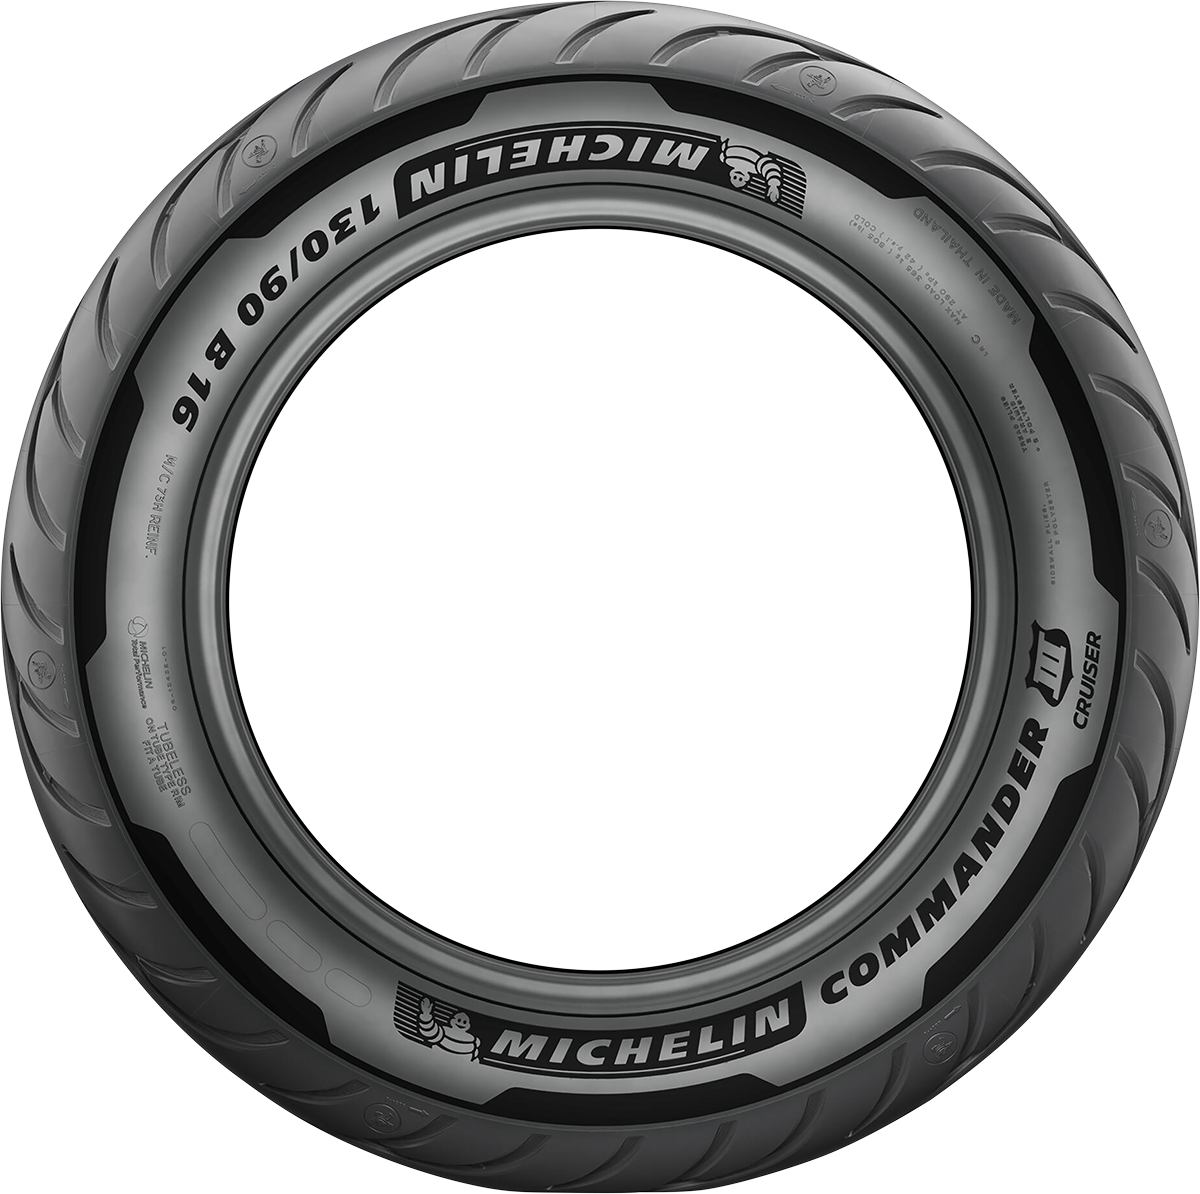 Michelin Commander III 130/90B16 Blackwall 73H Front Motorcycle Touring Tire